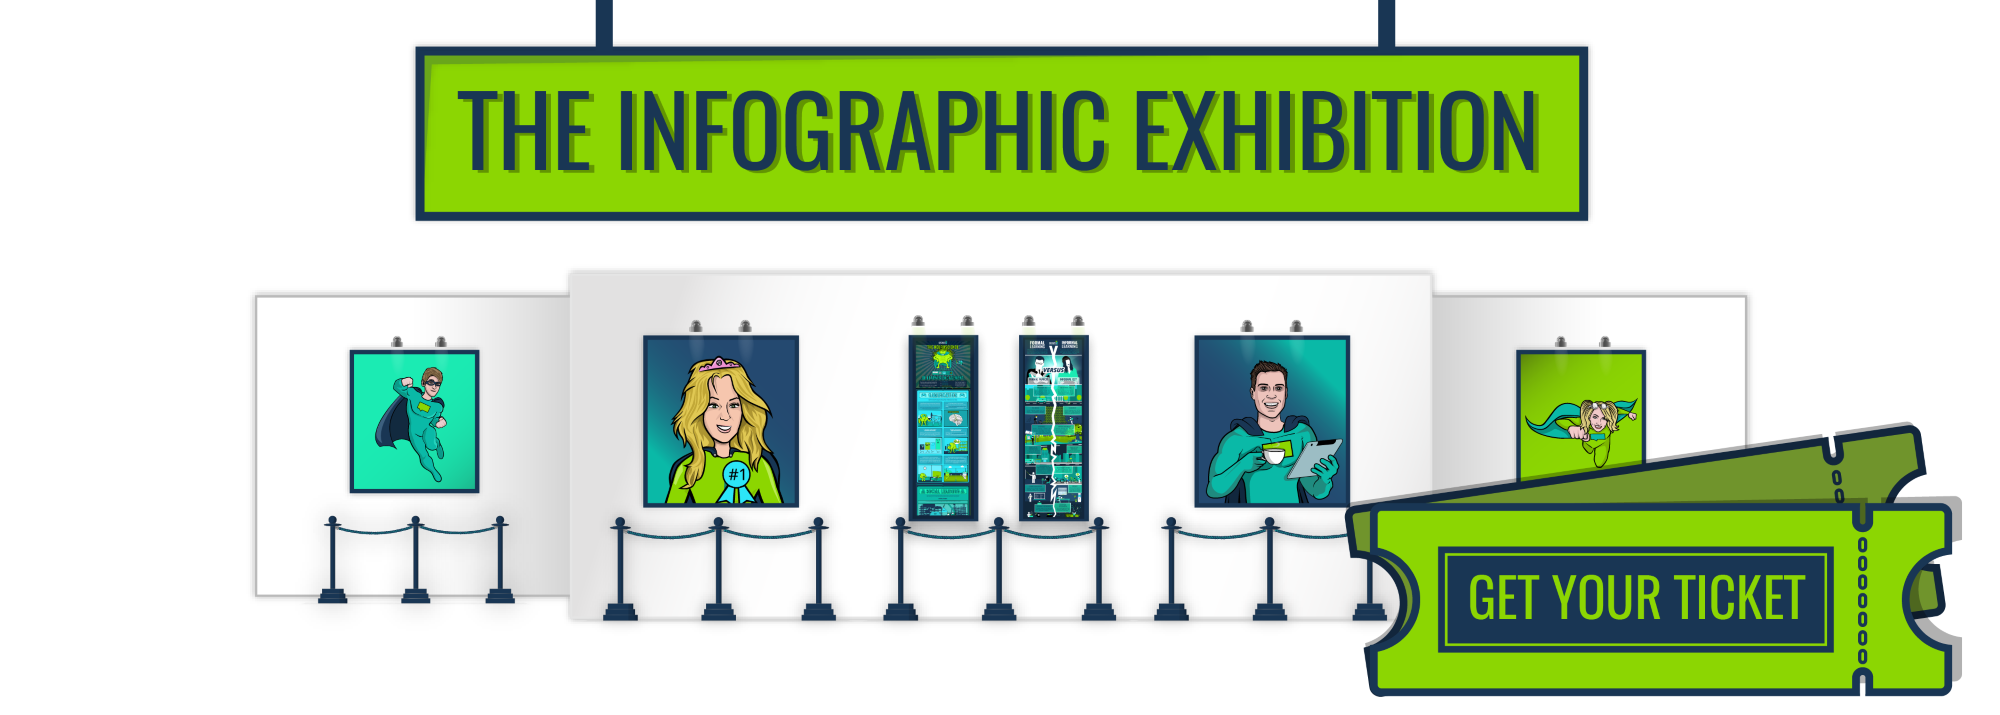 Infographic exhibition archives image v2